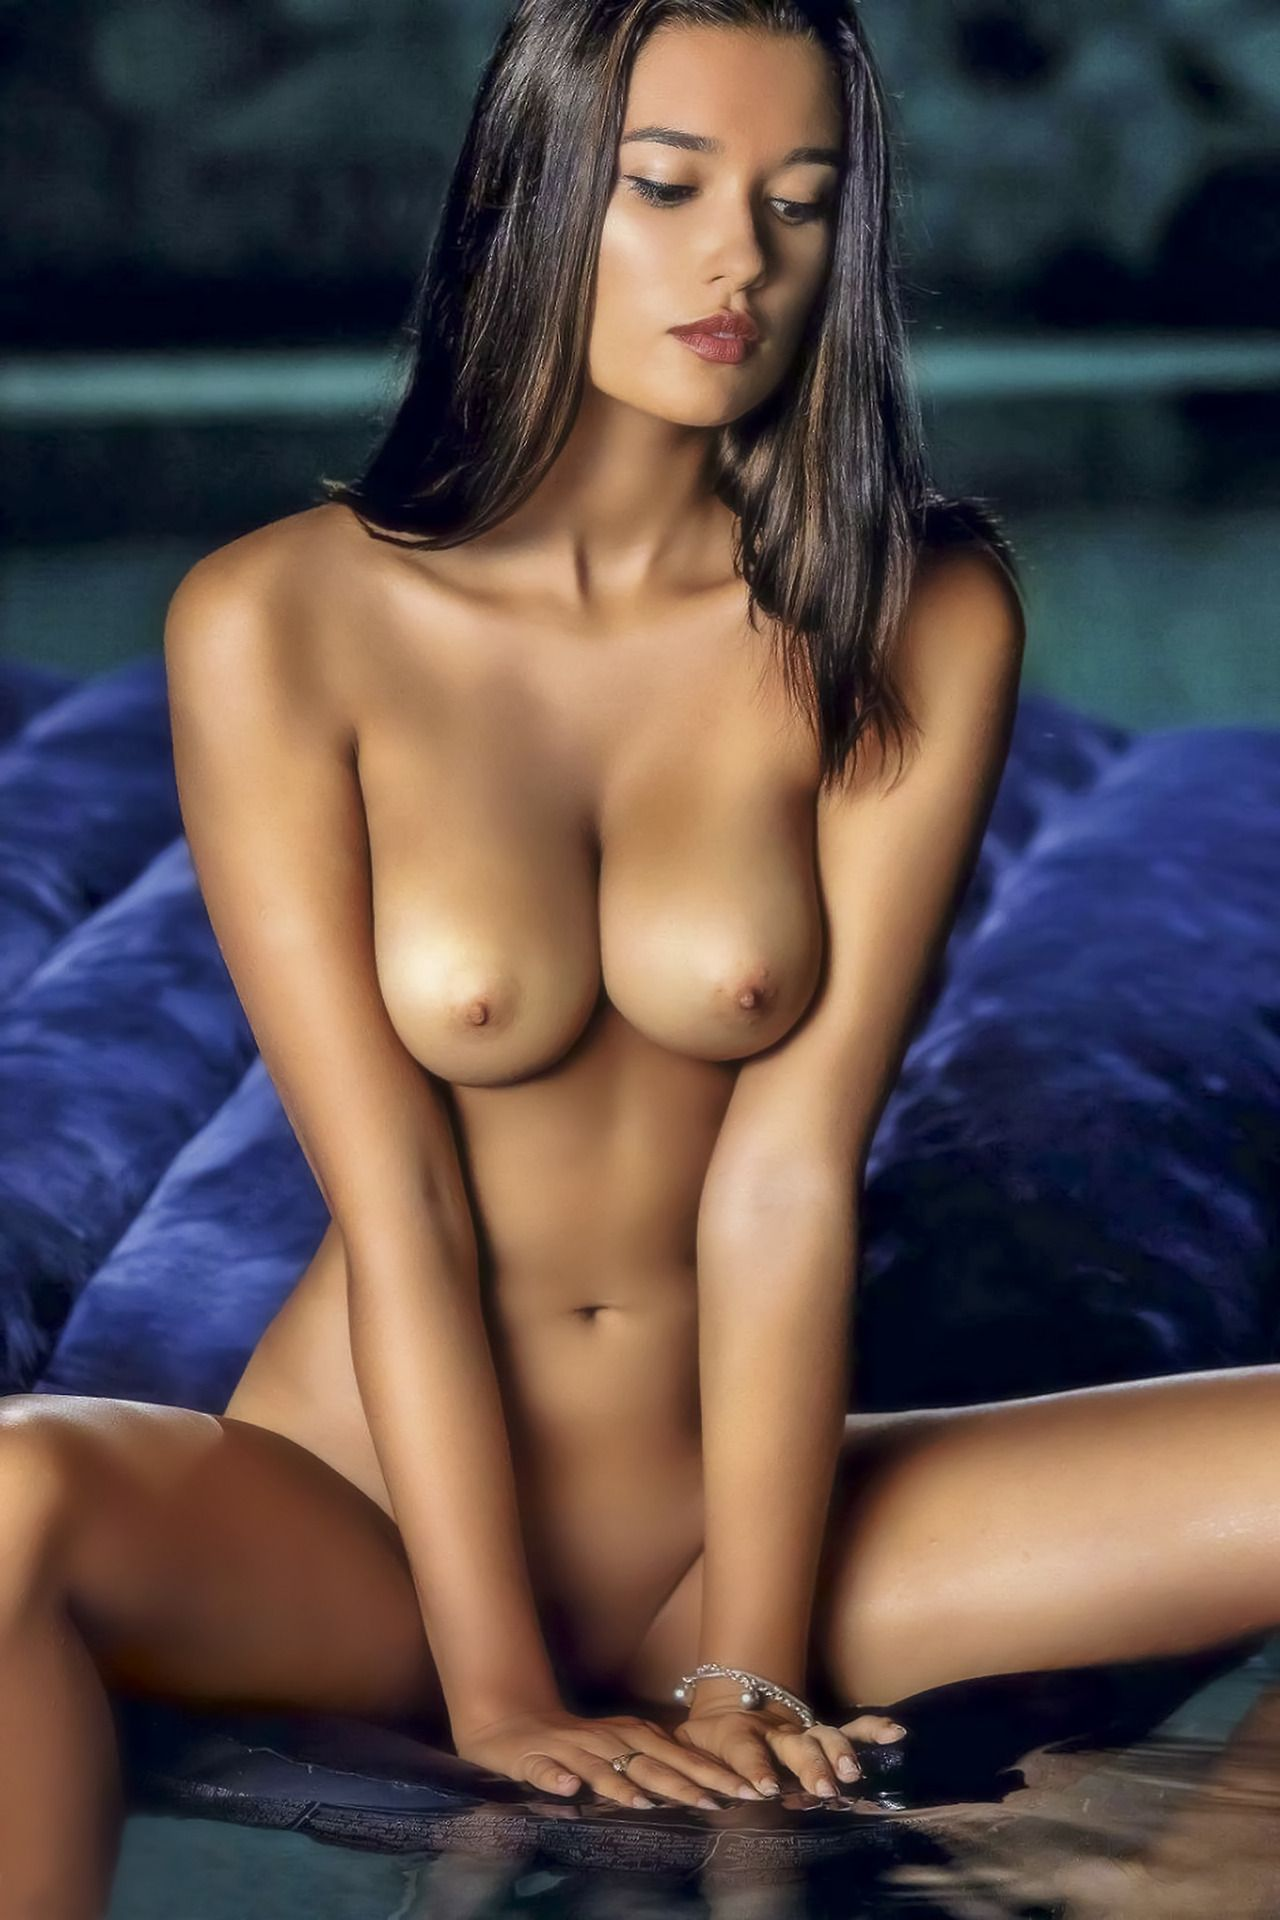 busty-young-caribbean-girls-nude-images-boys-nude